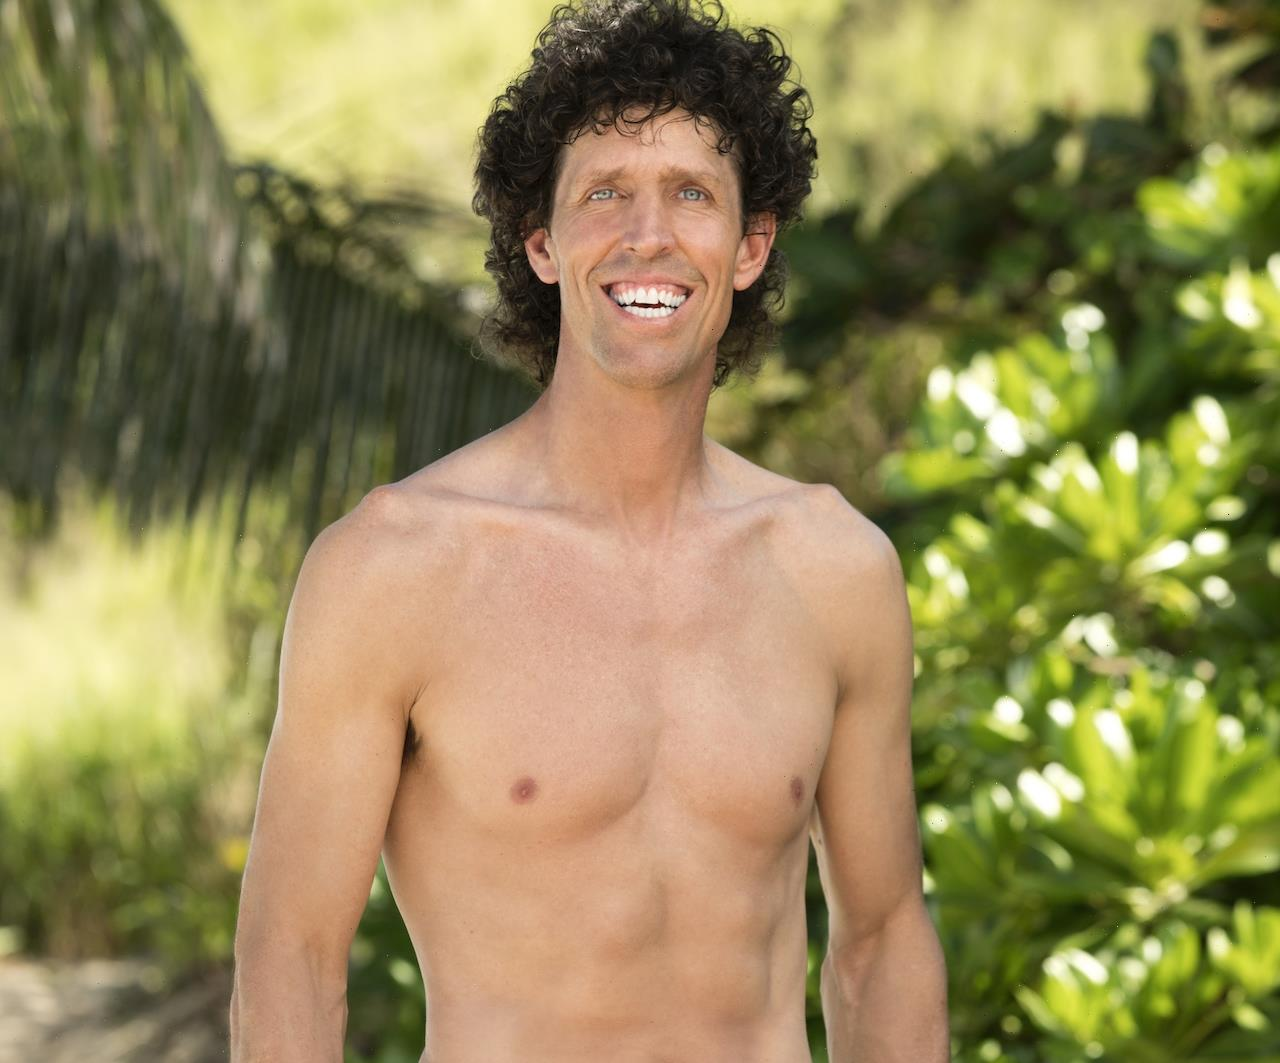 'Survivor' Fans Compare Brad Reese to Tony Vlachos After He Spies on Other Players